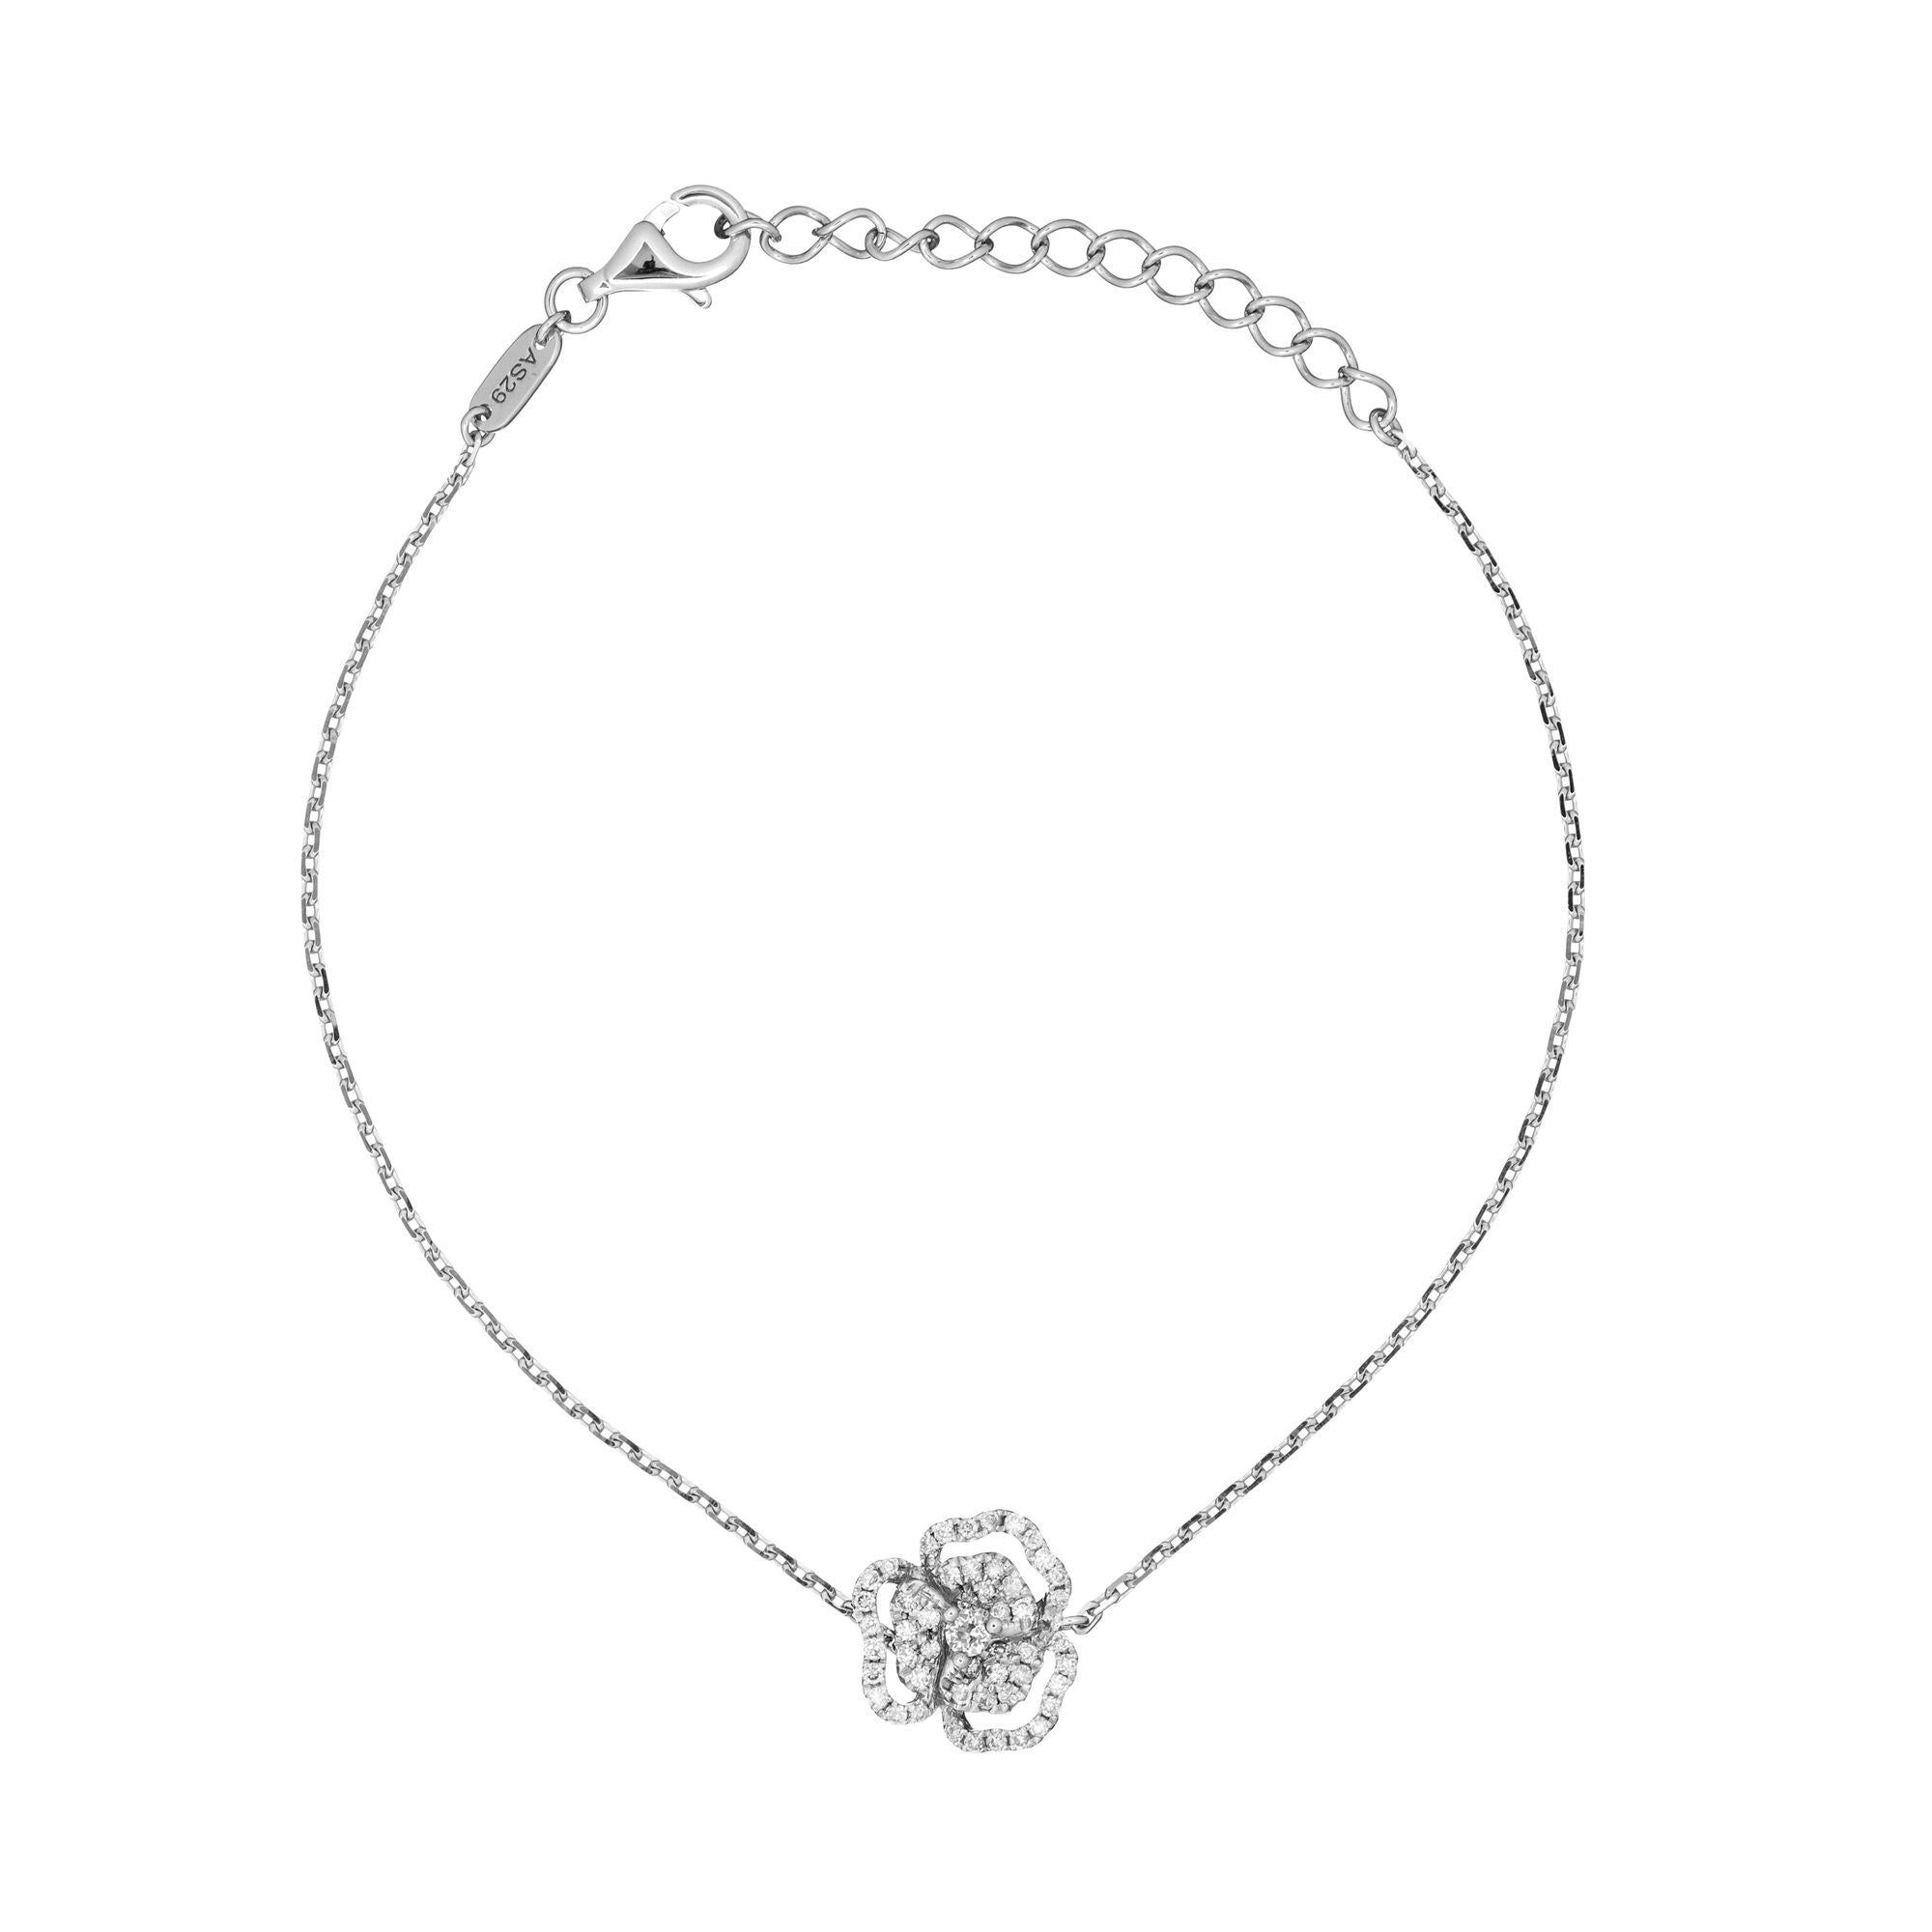 18k White Gold White Diamond Flower Line Bracelet Small 7mm